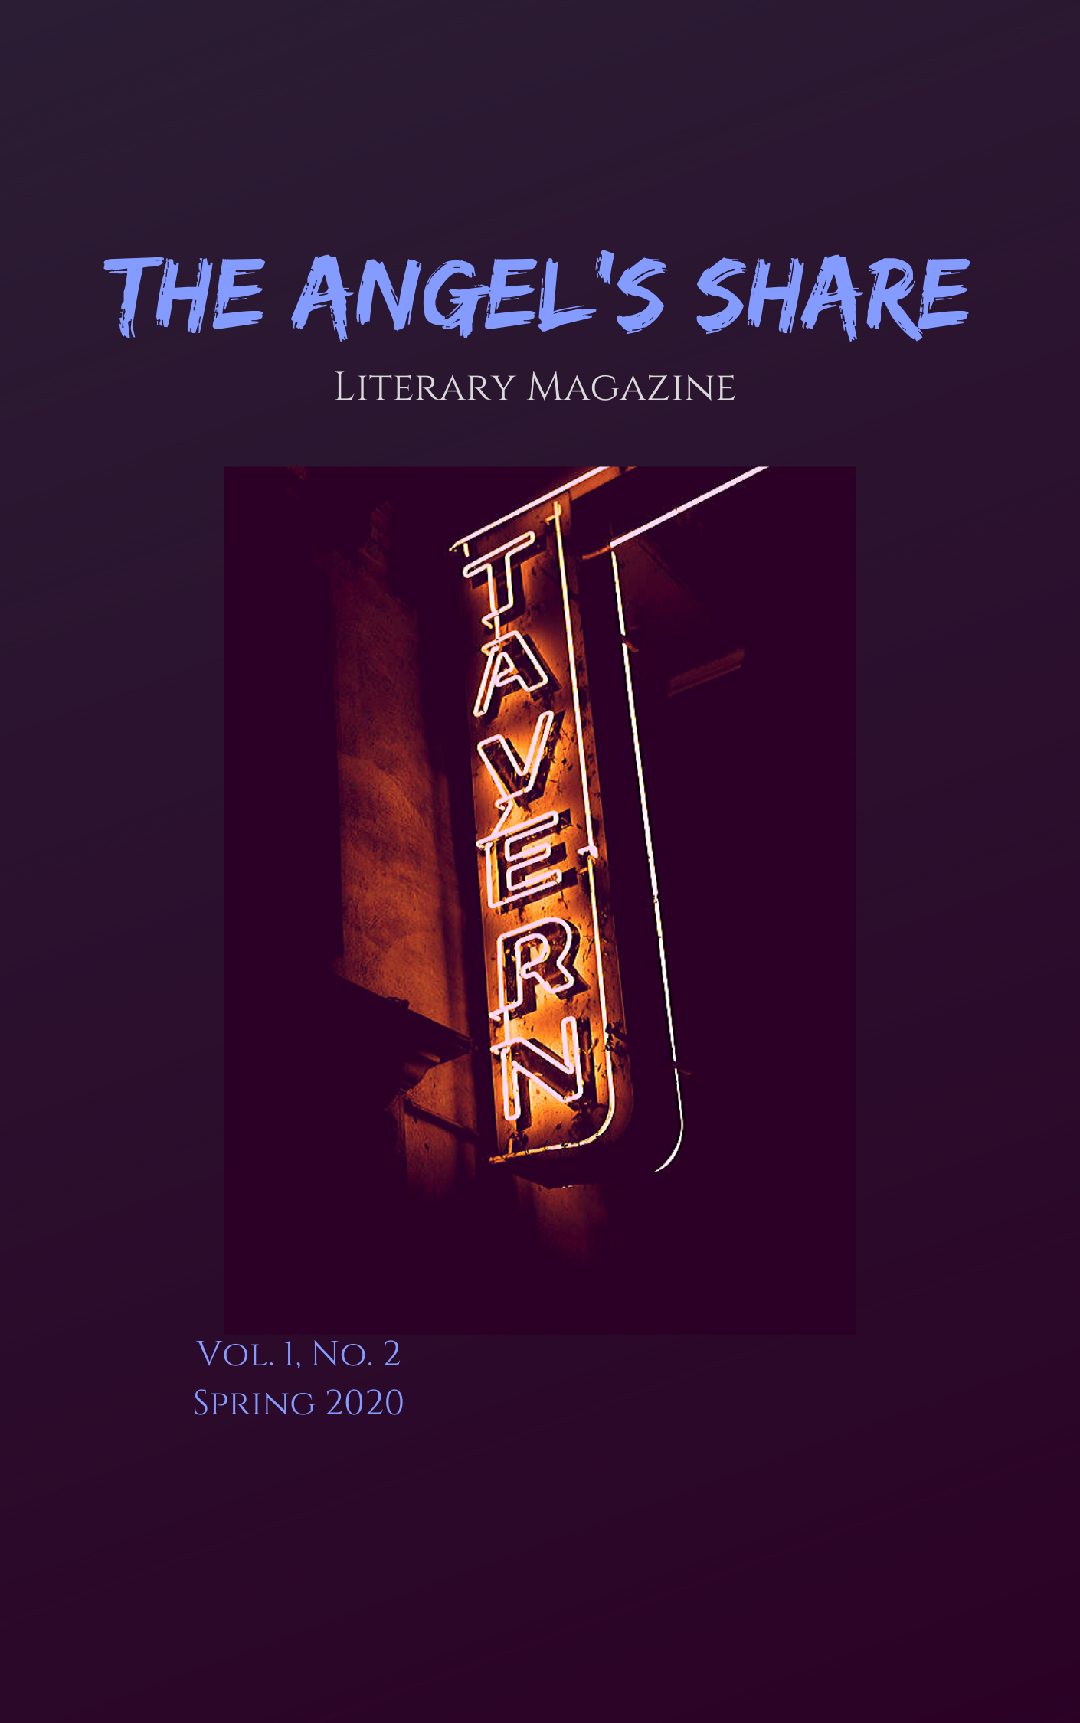 Image of The Angel's Share Literary Magazine